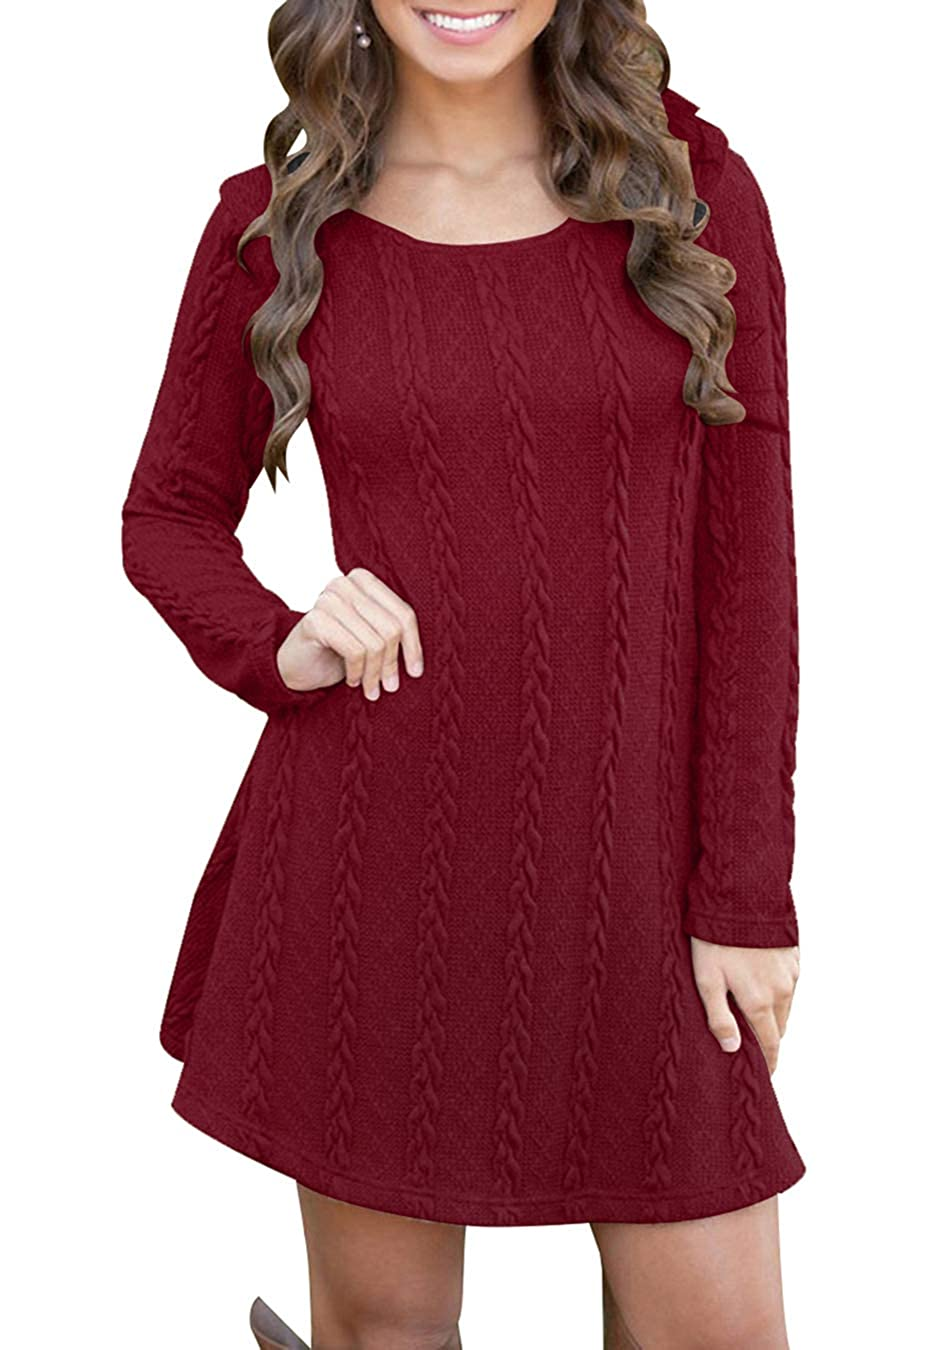 EFOFEI Womens Long Sleeve Knitted Casual Loose Round Neck Short Sweater Dress